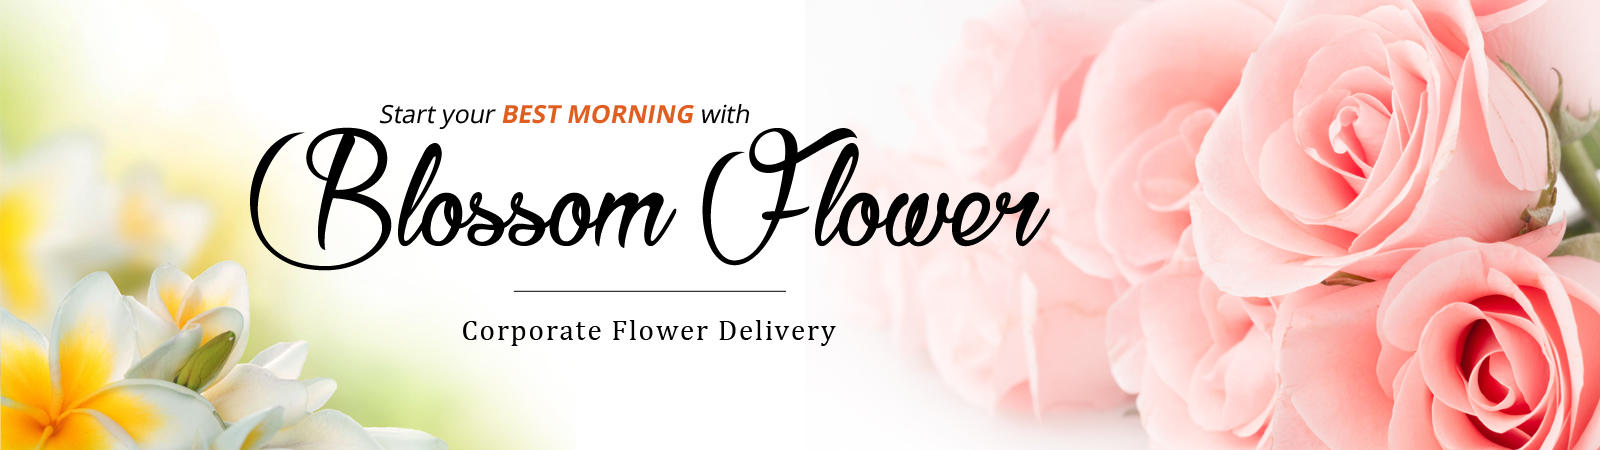 Corporate Flowers Gifts Ideas